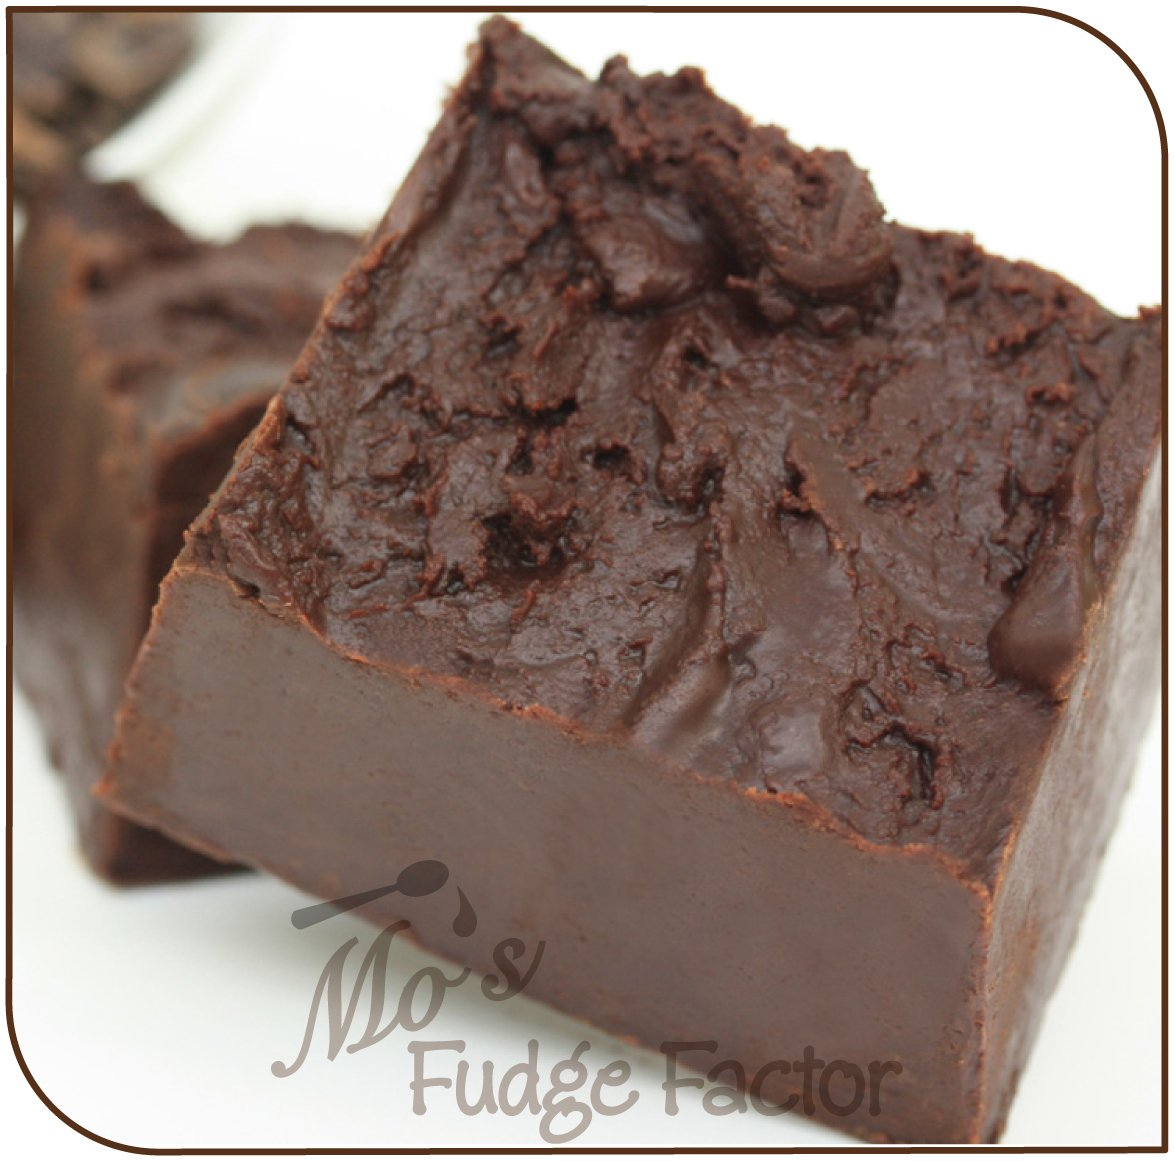 Mo's Fudge Factor, Dark Chocolate Fudge, 2 pound by Mo's Fudge Factor